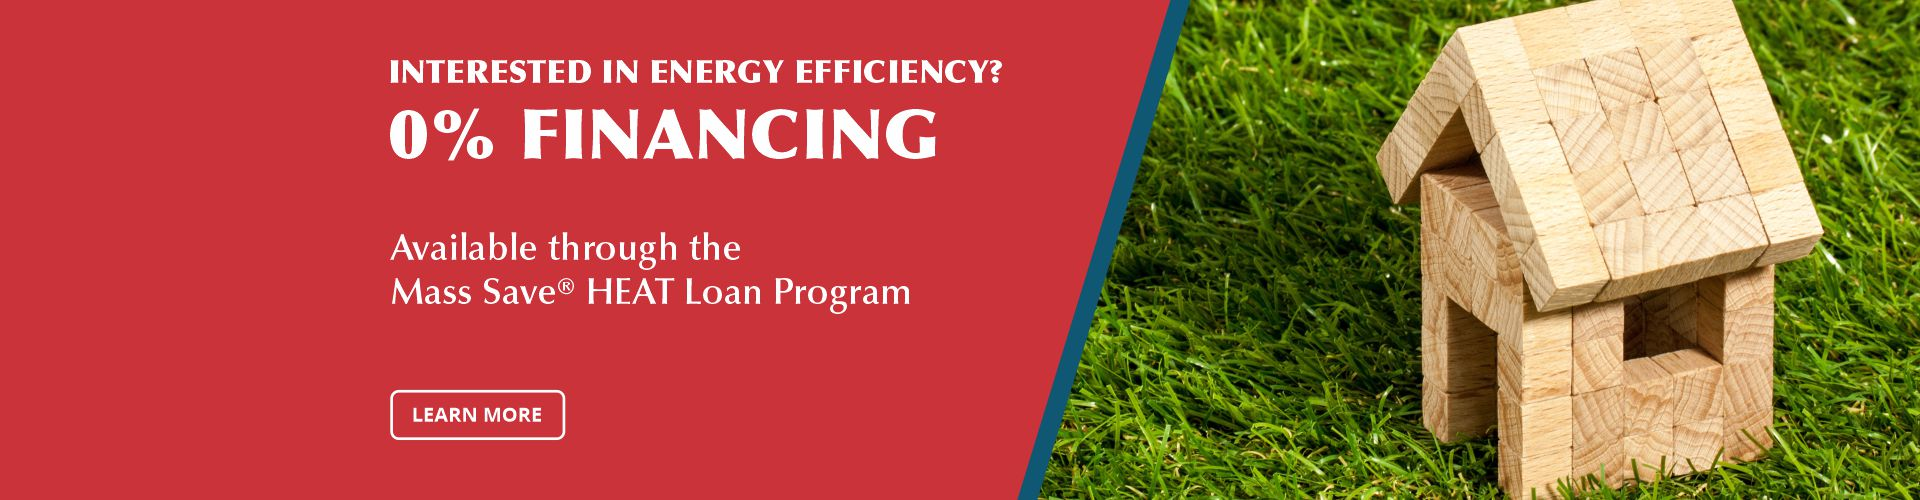 Interested in energy efficiency?